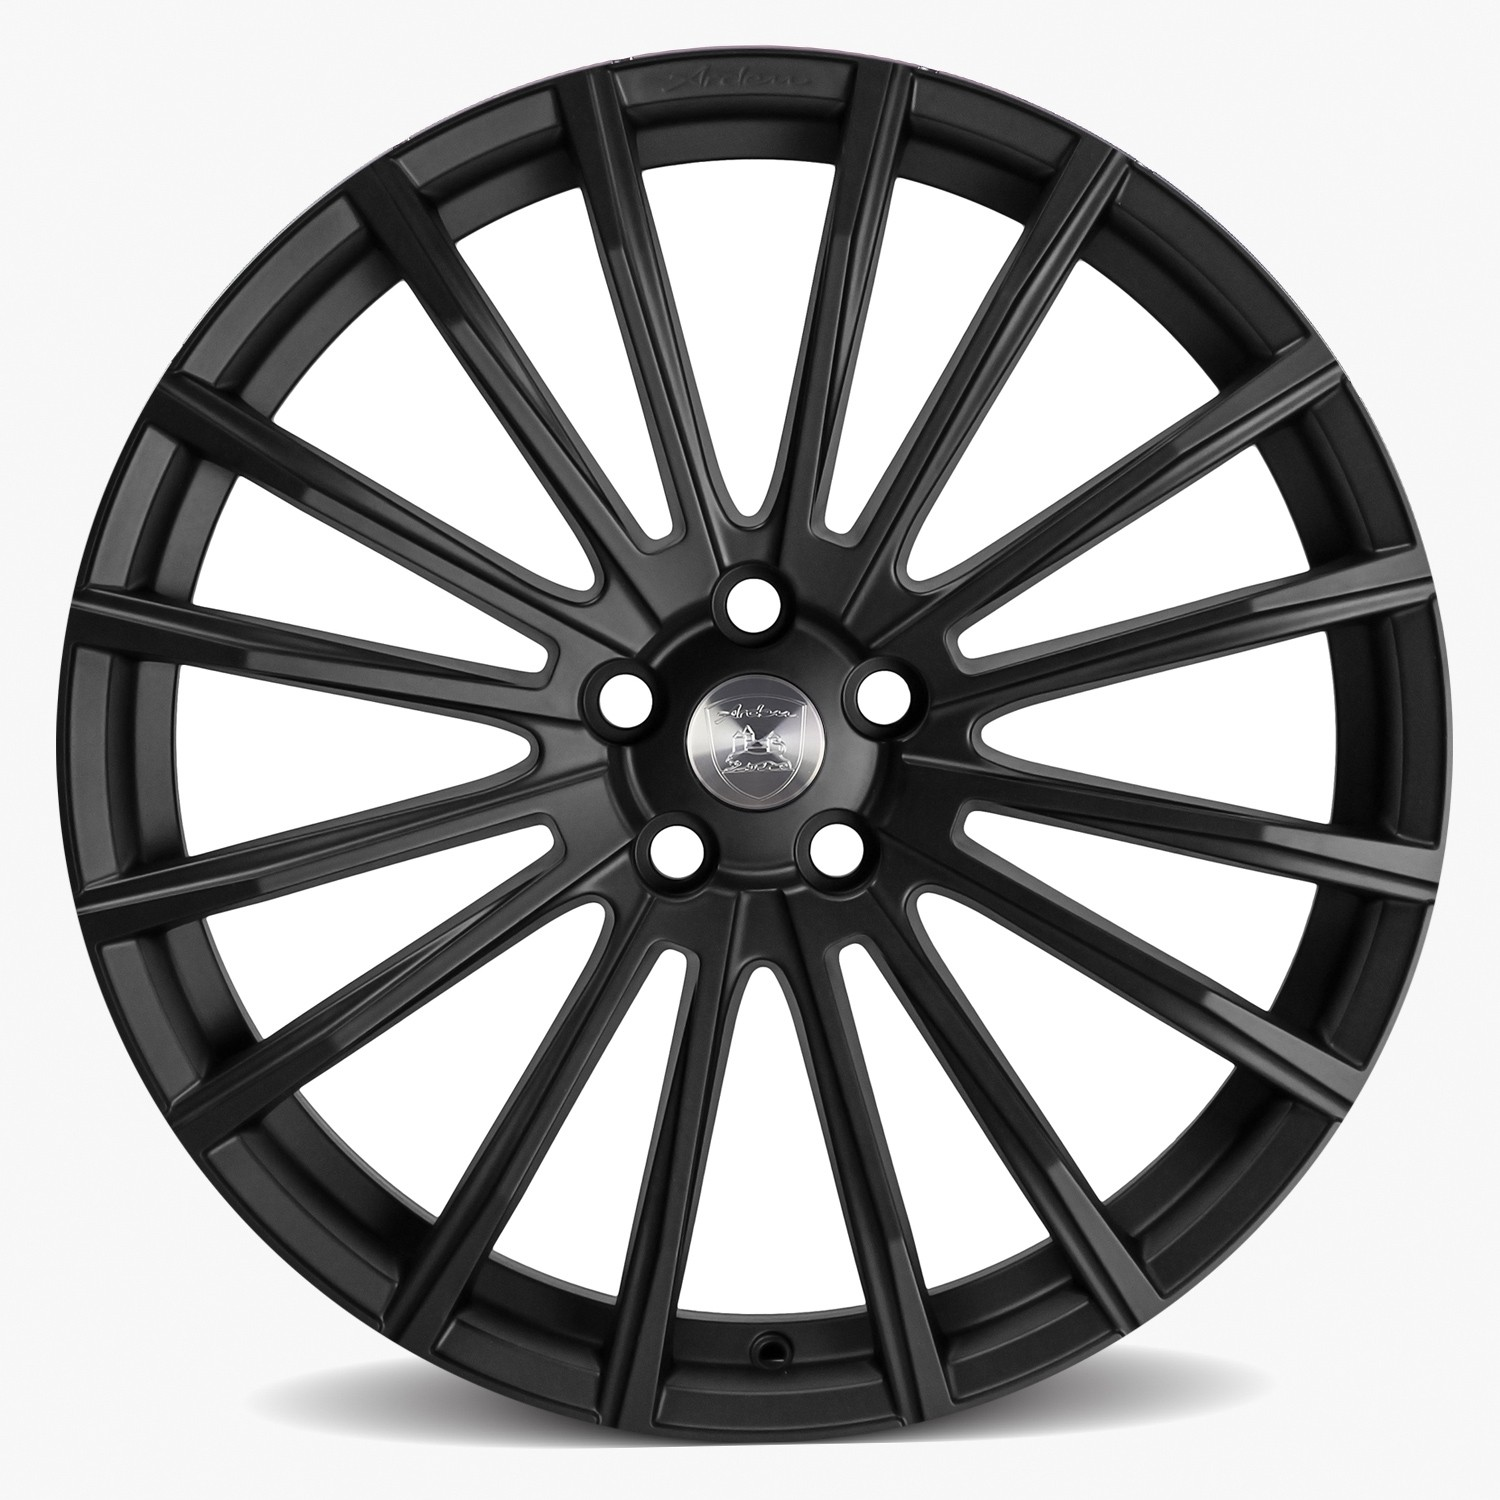 "Arden DAKAR III Wheel in 10 x 22"" Matte Black for Jaguar SUV and Land Rover"